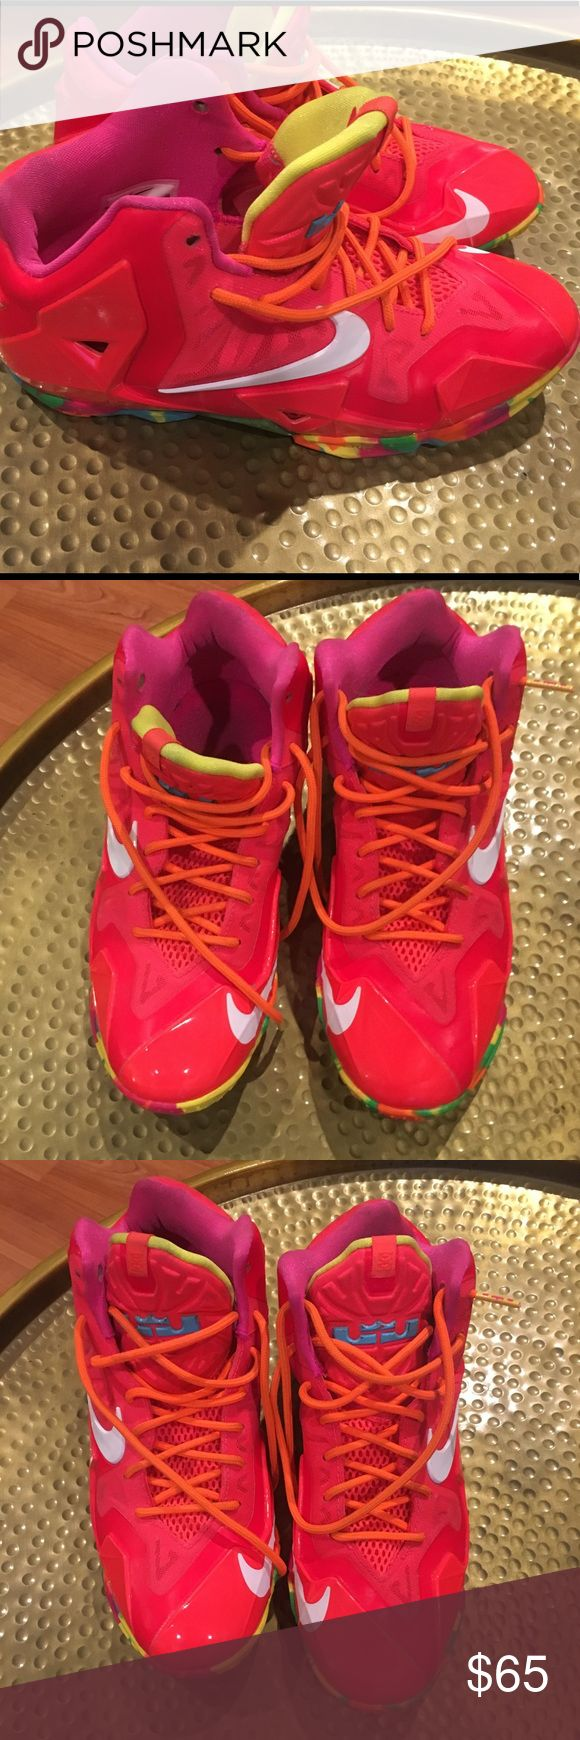 Nike Lebrons Fruity Pebbles Worn by my daughter once. Perfect condition. Some tiny marks. Nike Shoes Sneakers